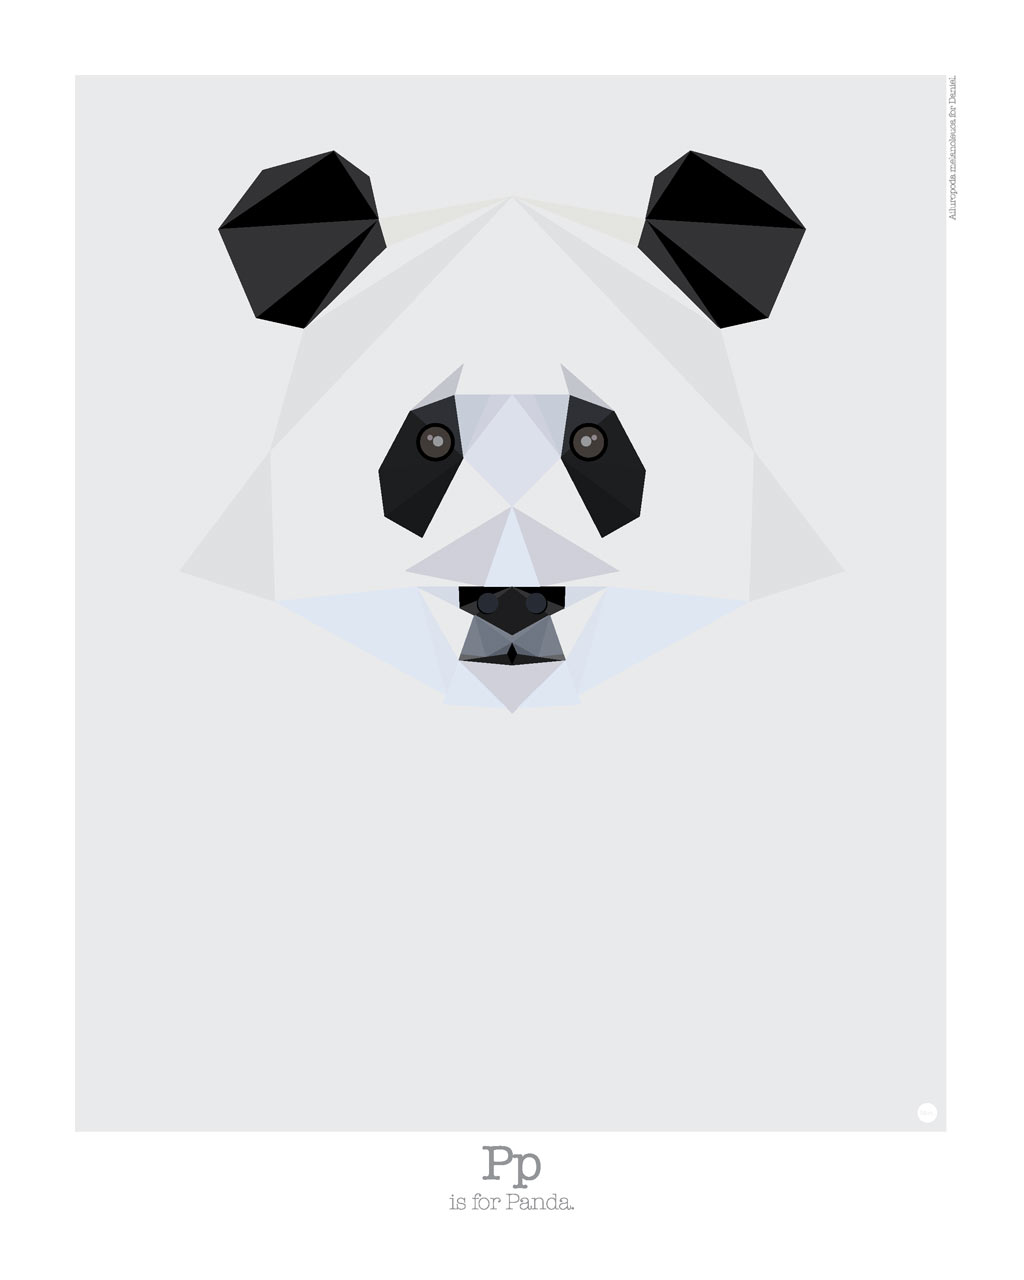 animal-alphabet-p=panda-mat-mabe